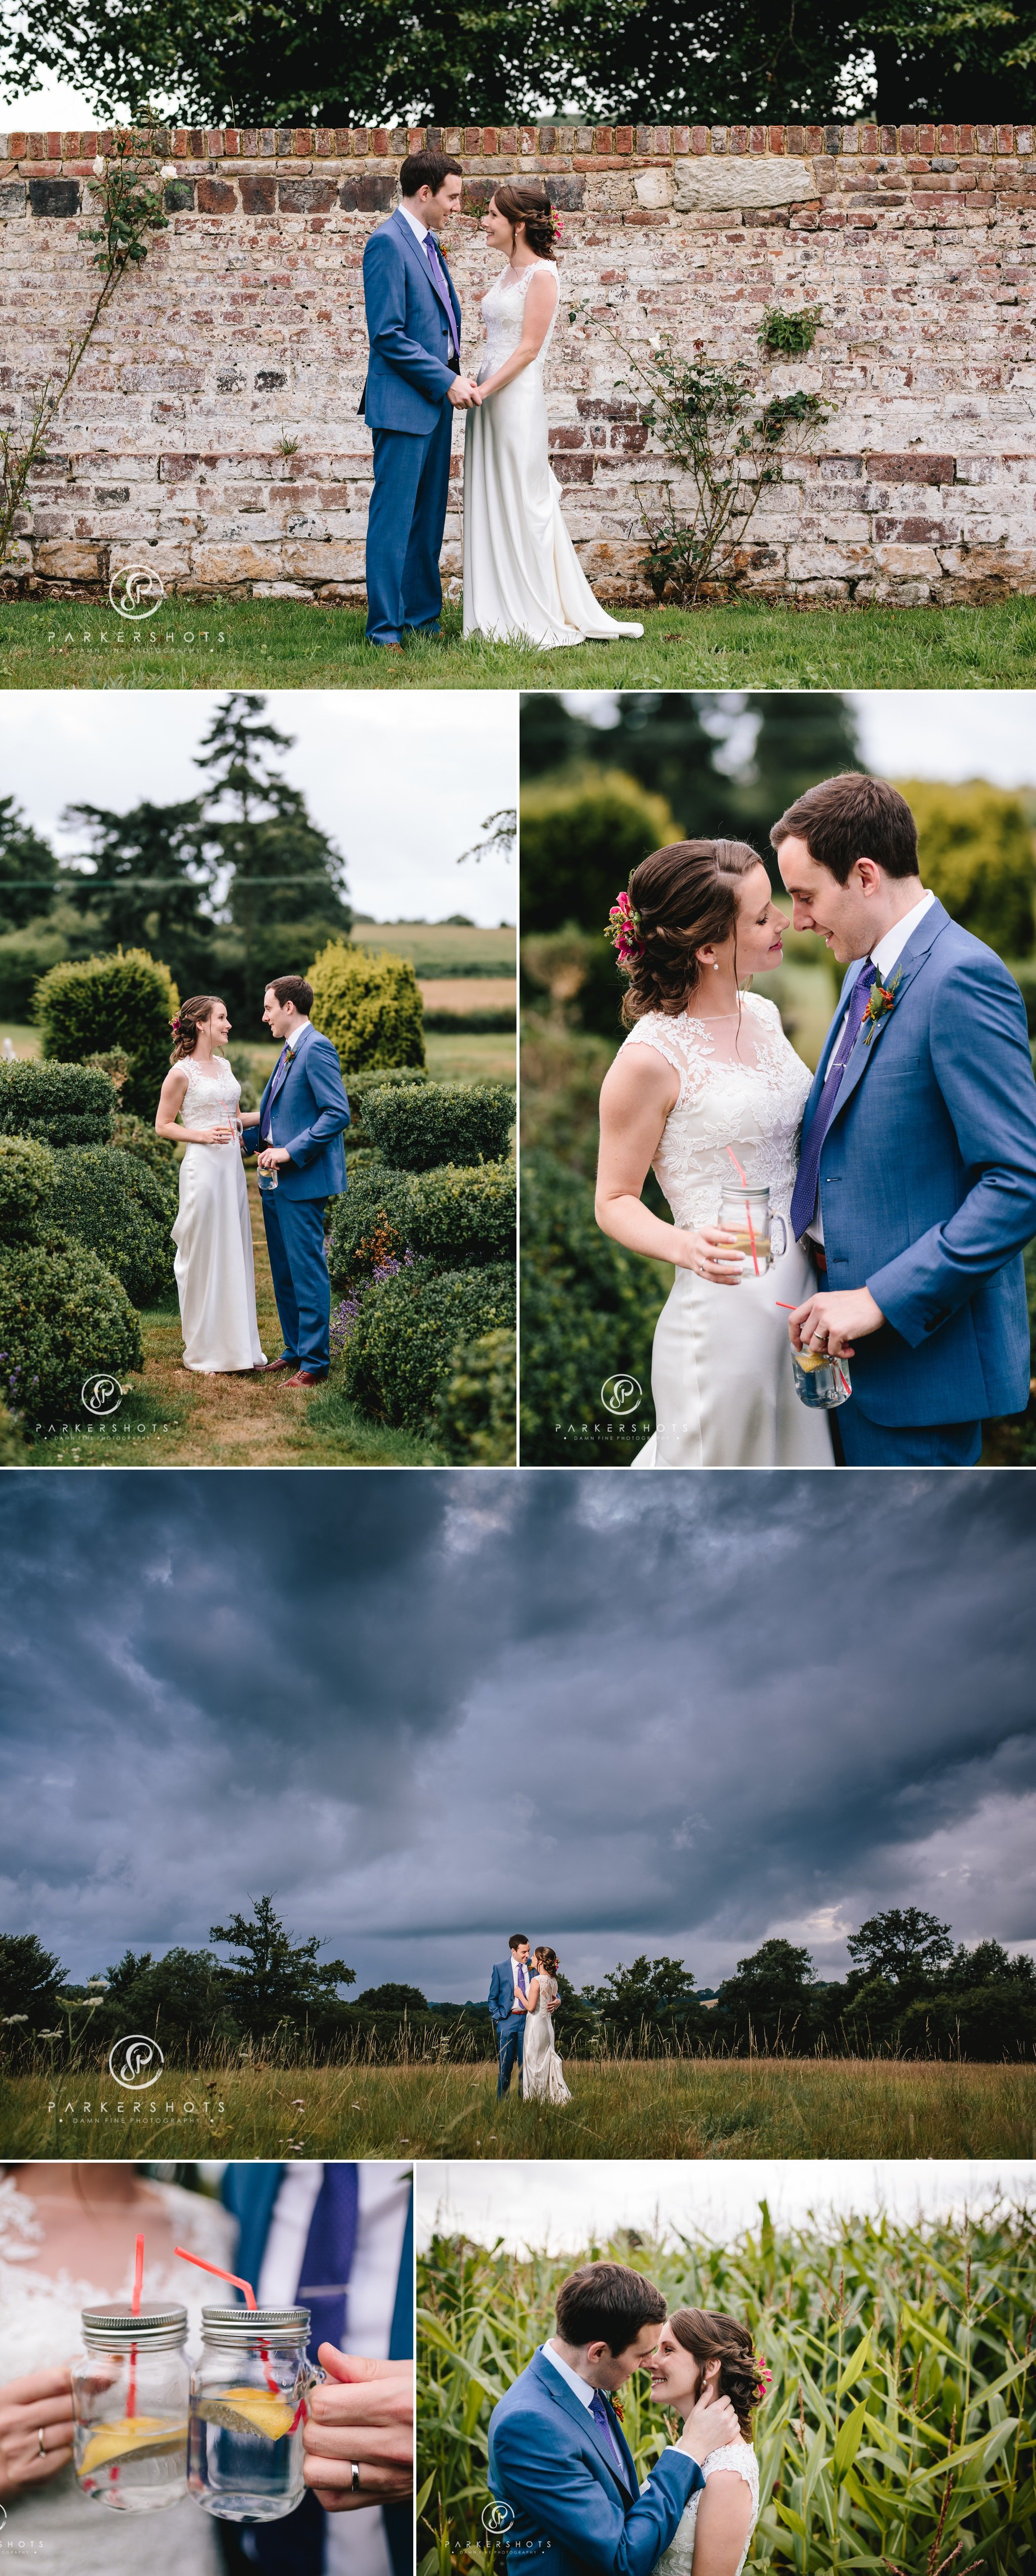 Portraits of bride and groom at Chafford Park